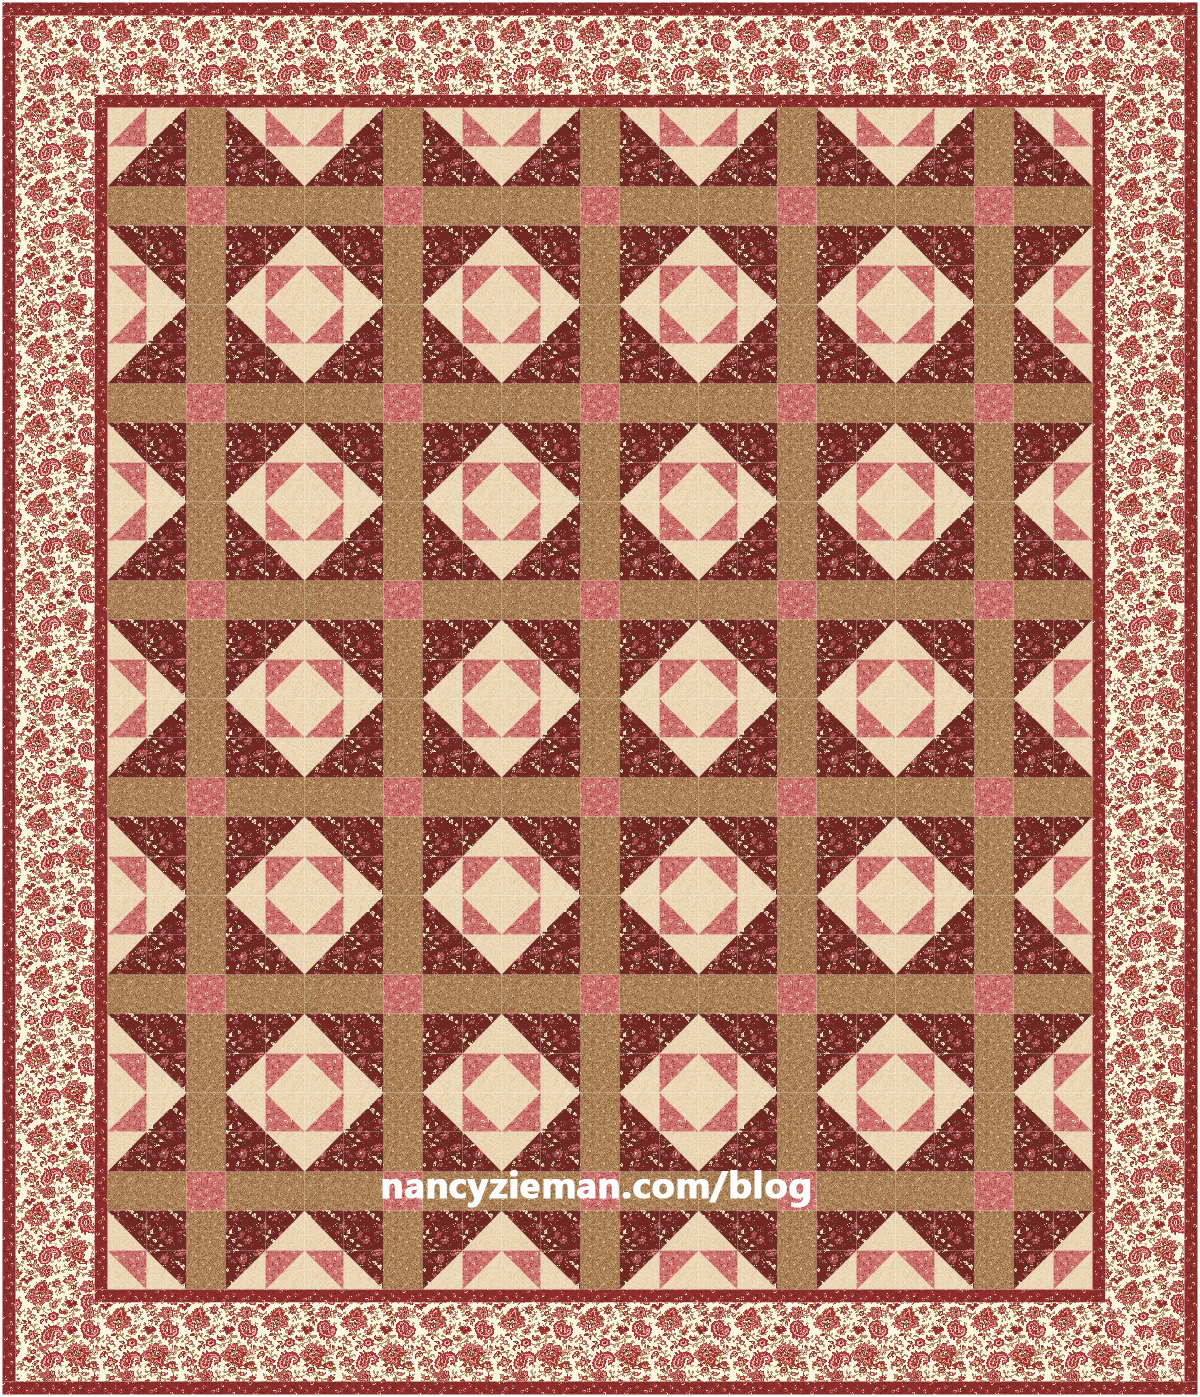 March 2017 Block of the Month by Nancy Zieman/Sewing With Nancy Duck & Duckling Block